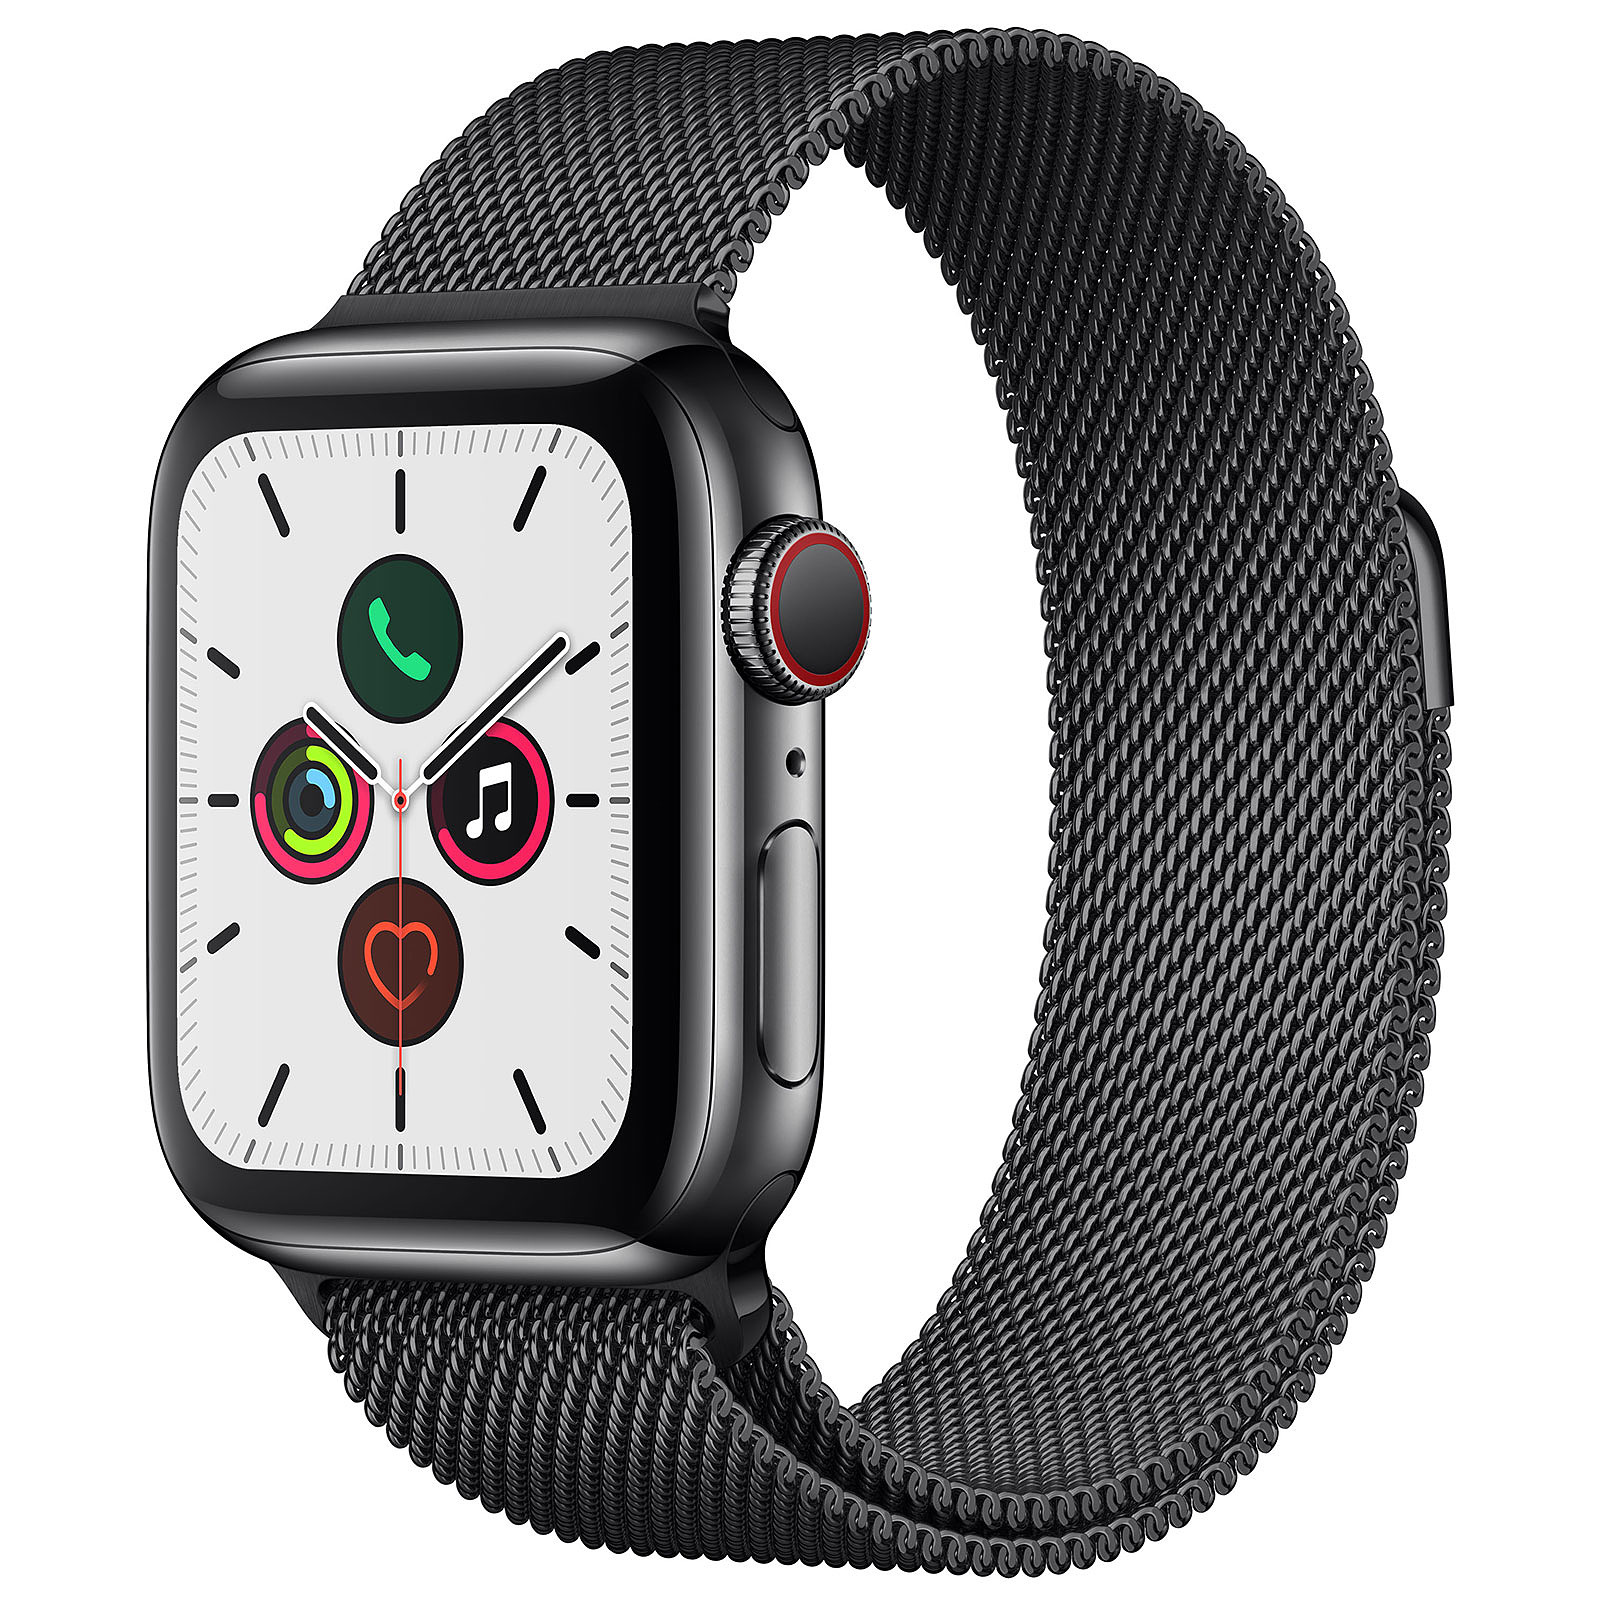 Apple Watch Series 5 GPS + Cellular Acier Noir Bracelet Milanais Noir 40 mm